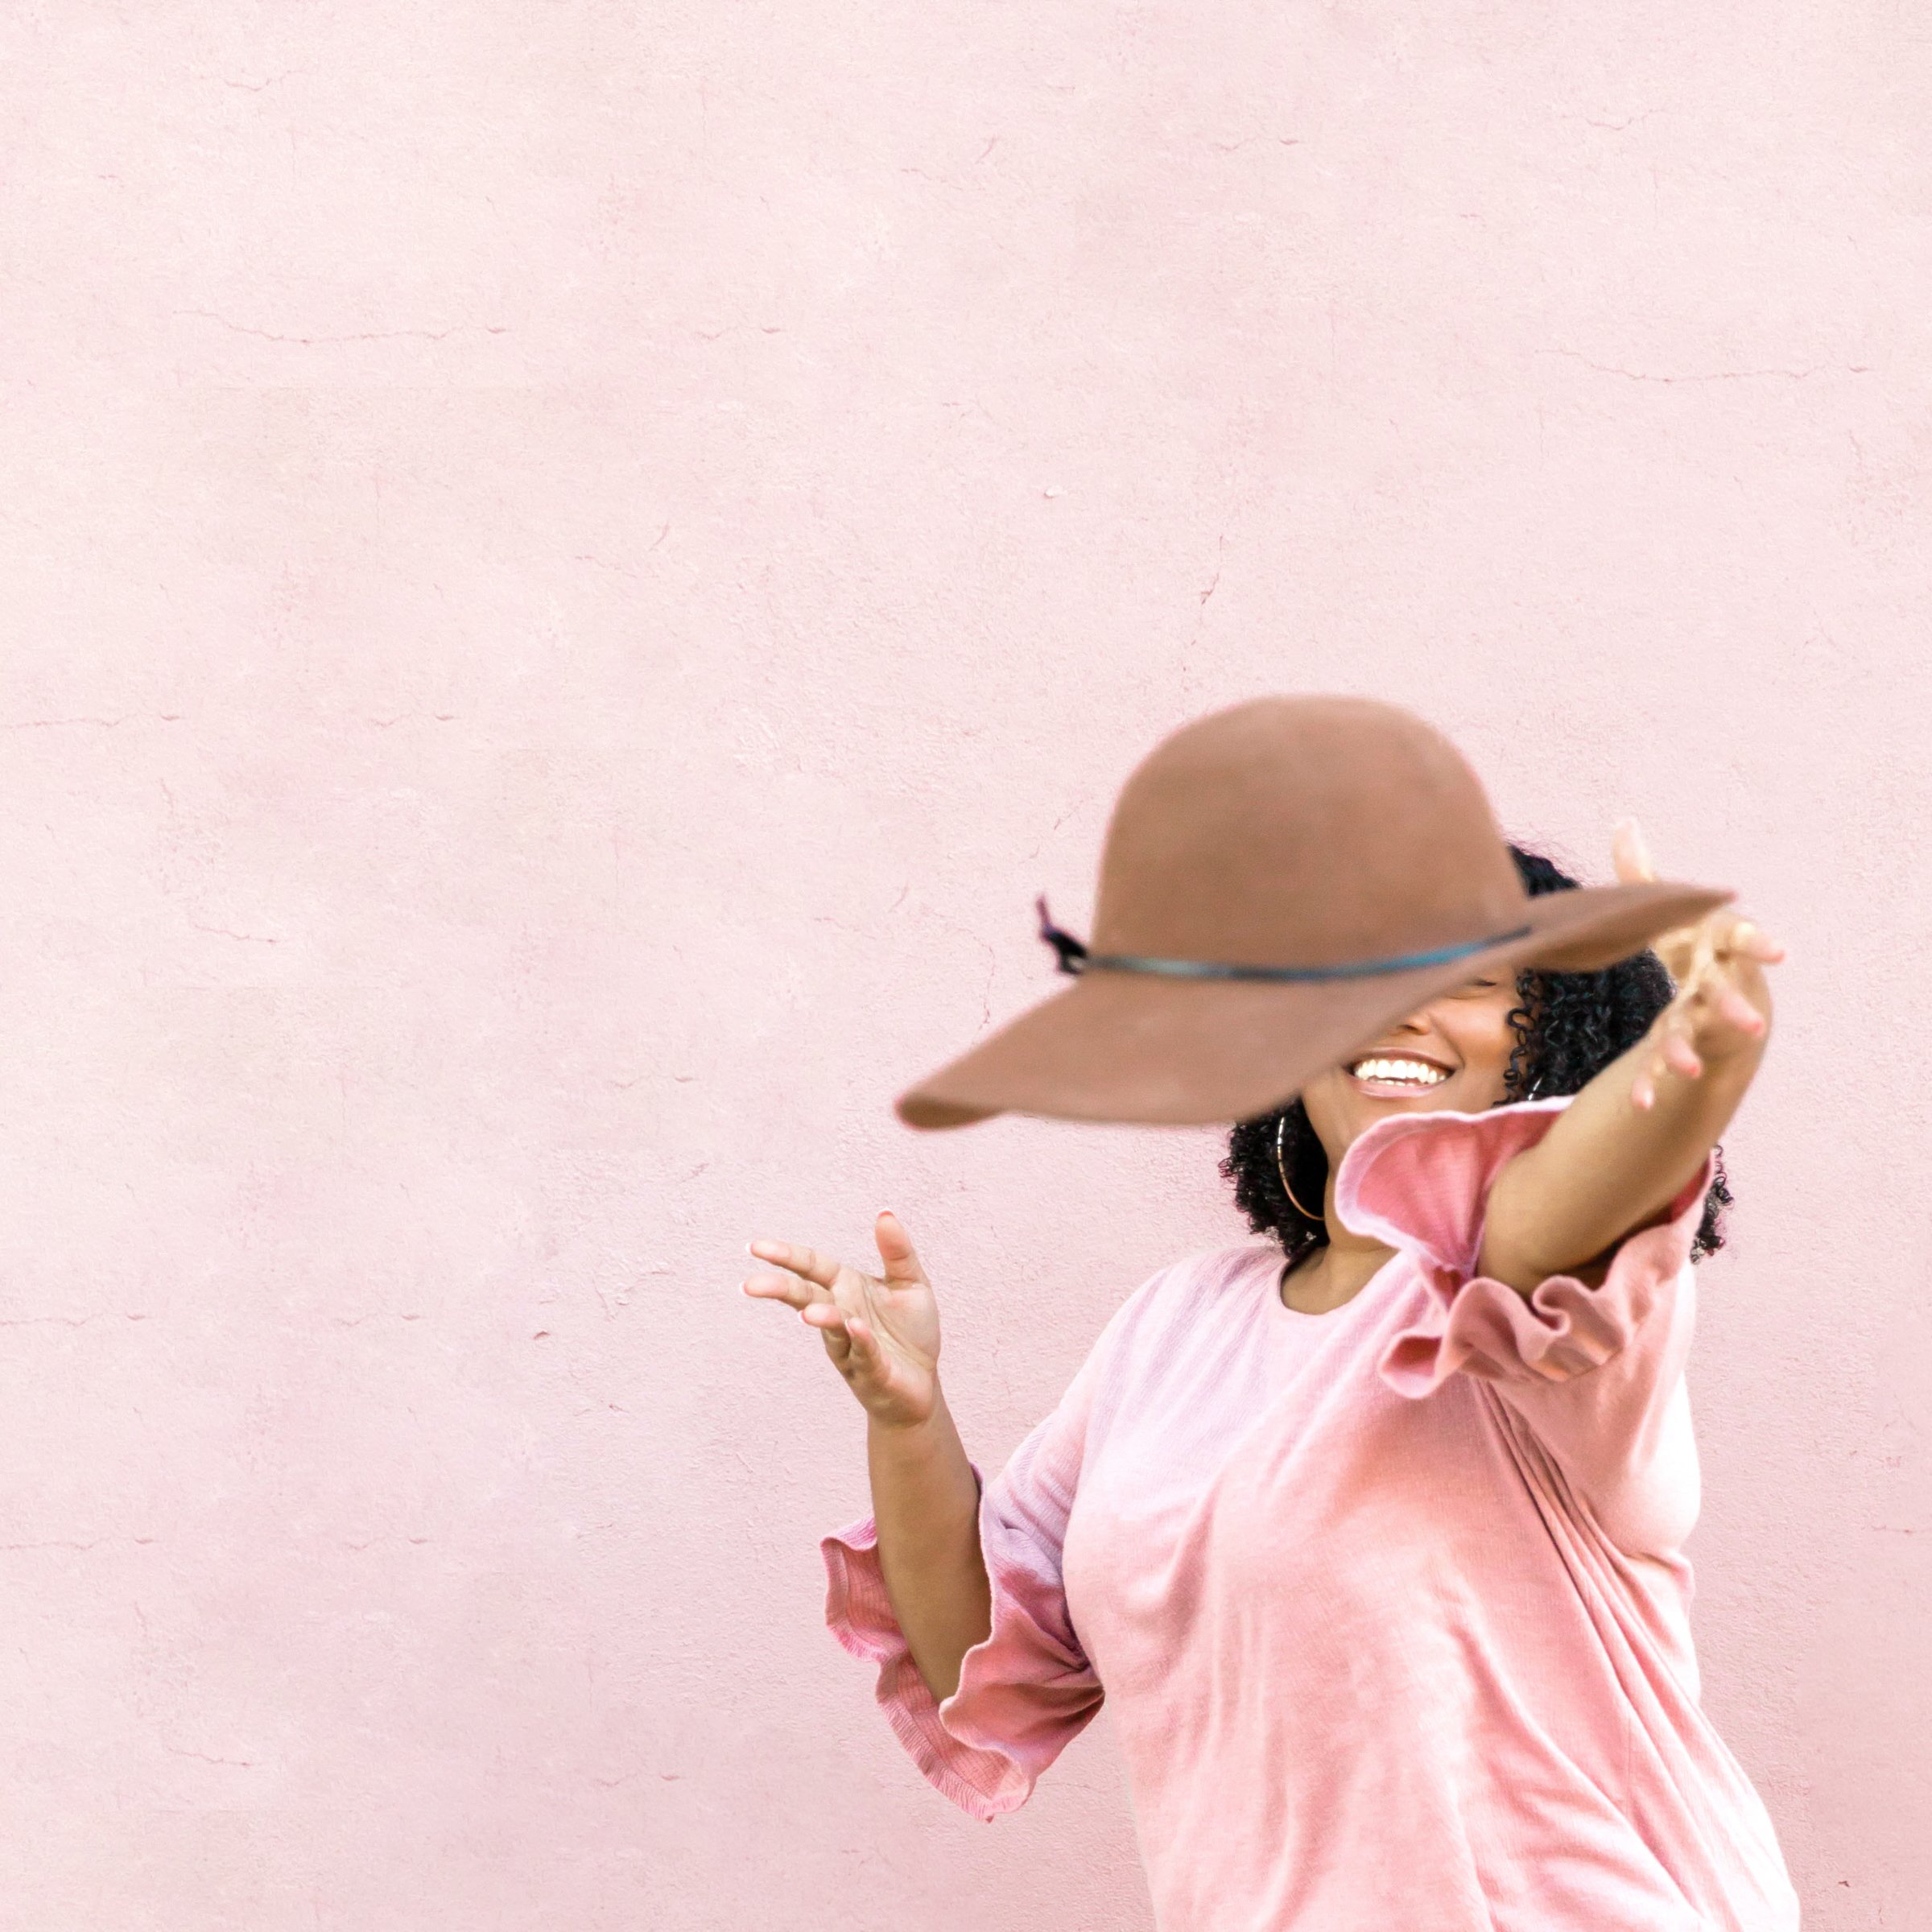 Woman tossing hat